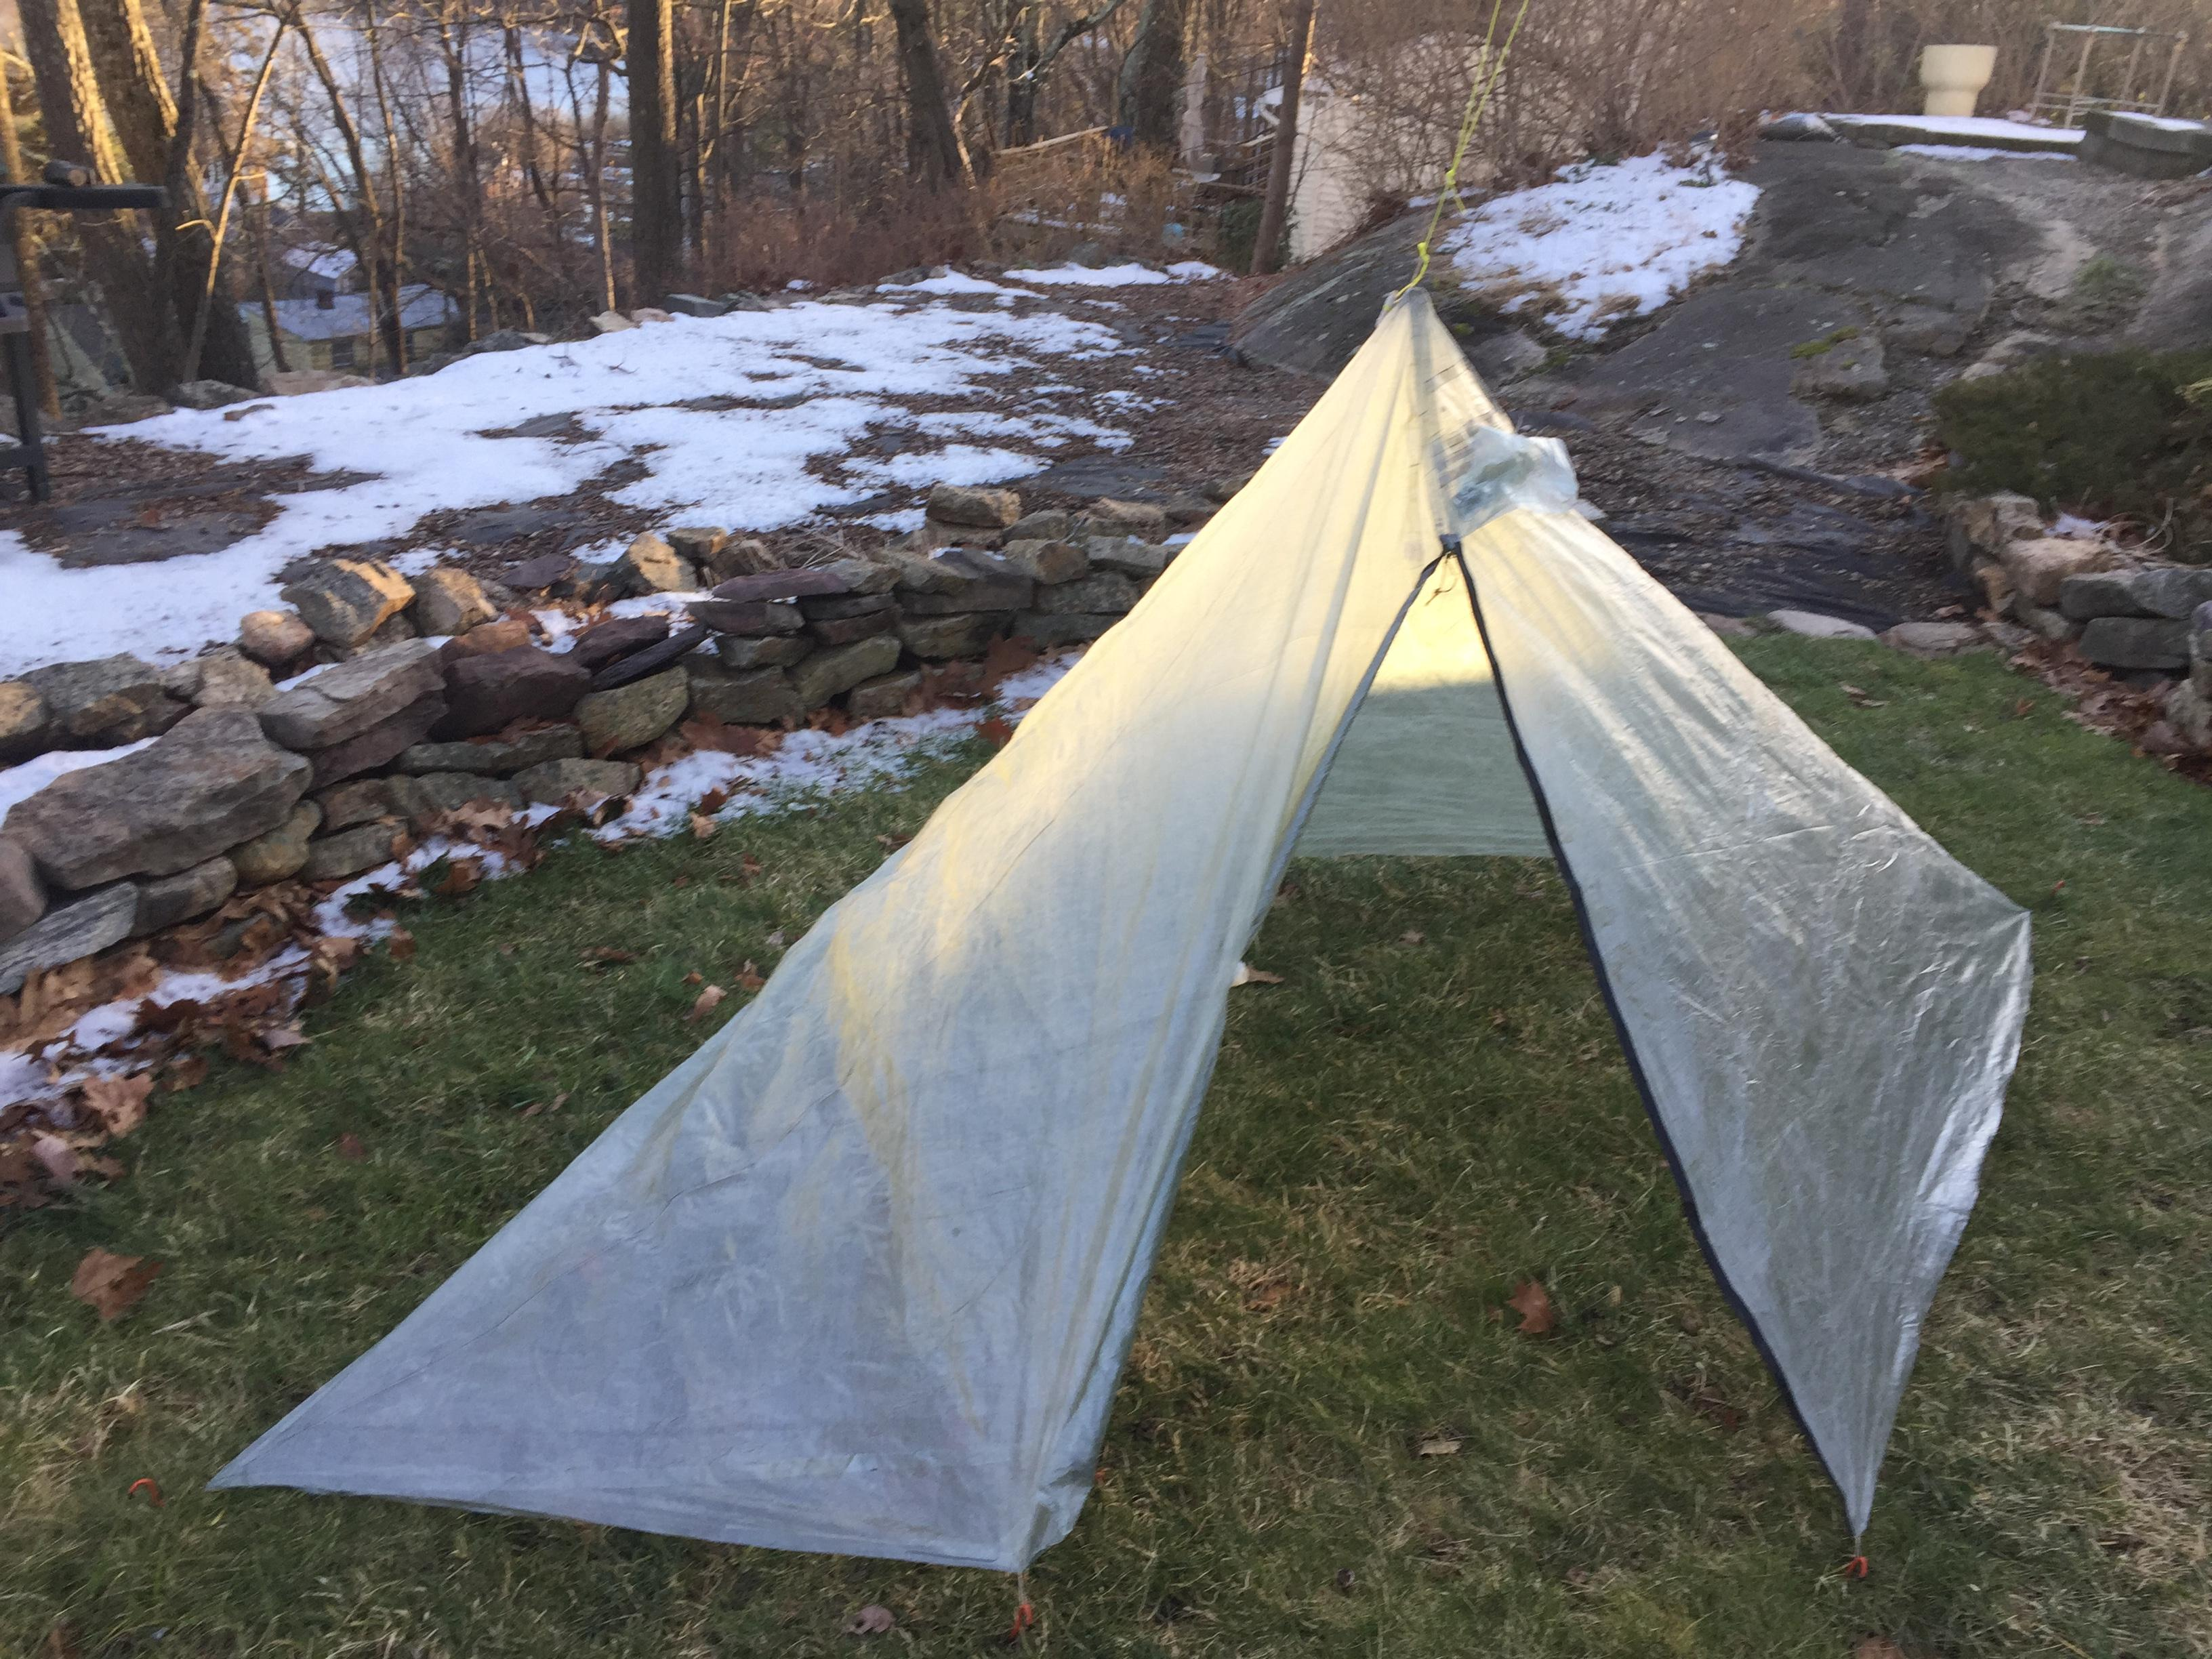 My 4.7 ounce tent, 0.51 oz/sqyd, 5ft x 9ft x 3.5ft high